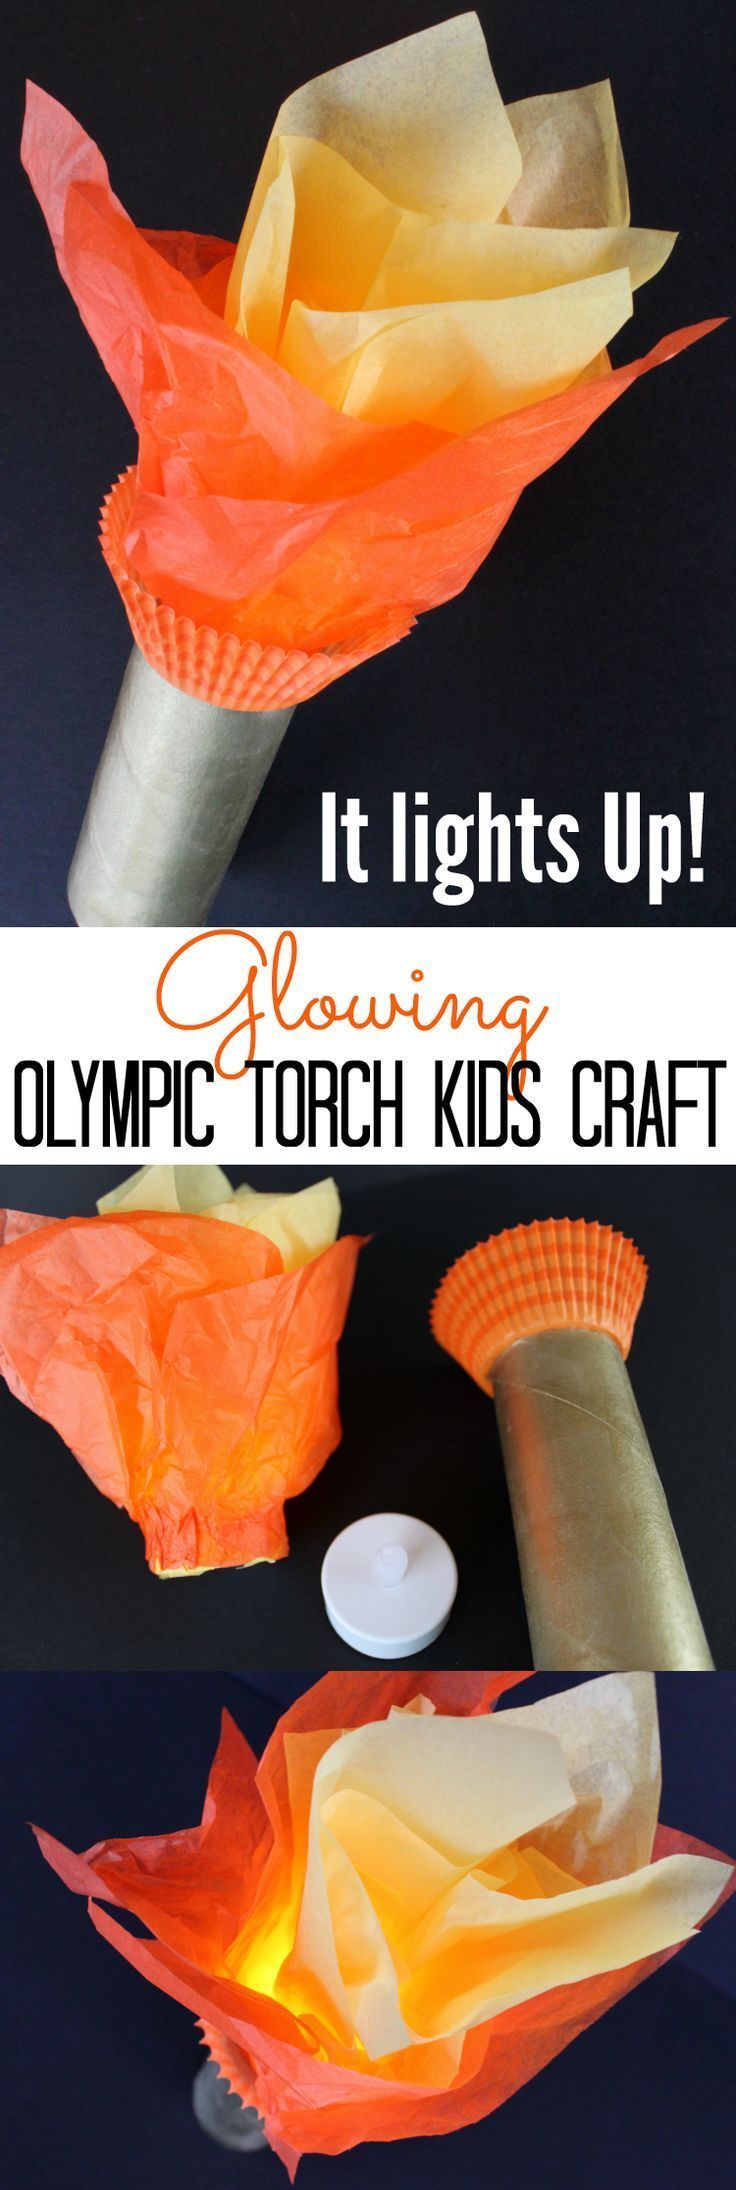 IT LIGHTS UP! Glowing Tealight Olympic Torch Kids Craft for the Summer Olympics and Winter Olympics games - A great toilet paper roll craft for kids to hold during the Olympic Opening Ceremony! | http://OHMY-CREATIVE.COM